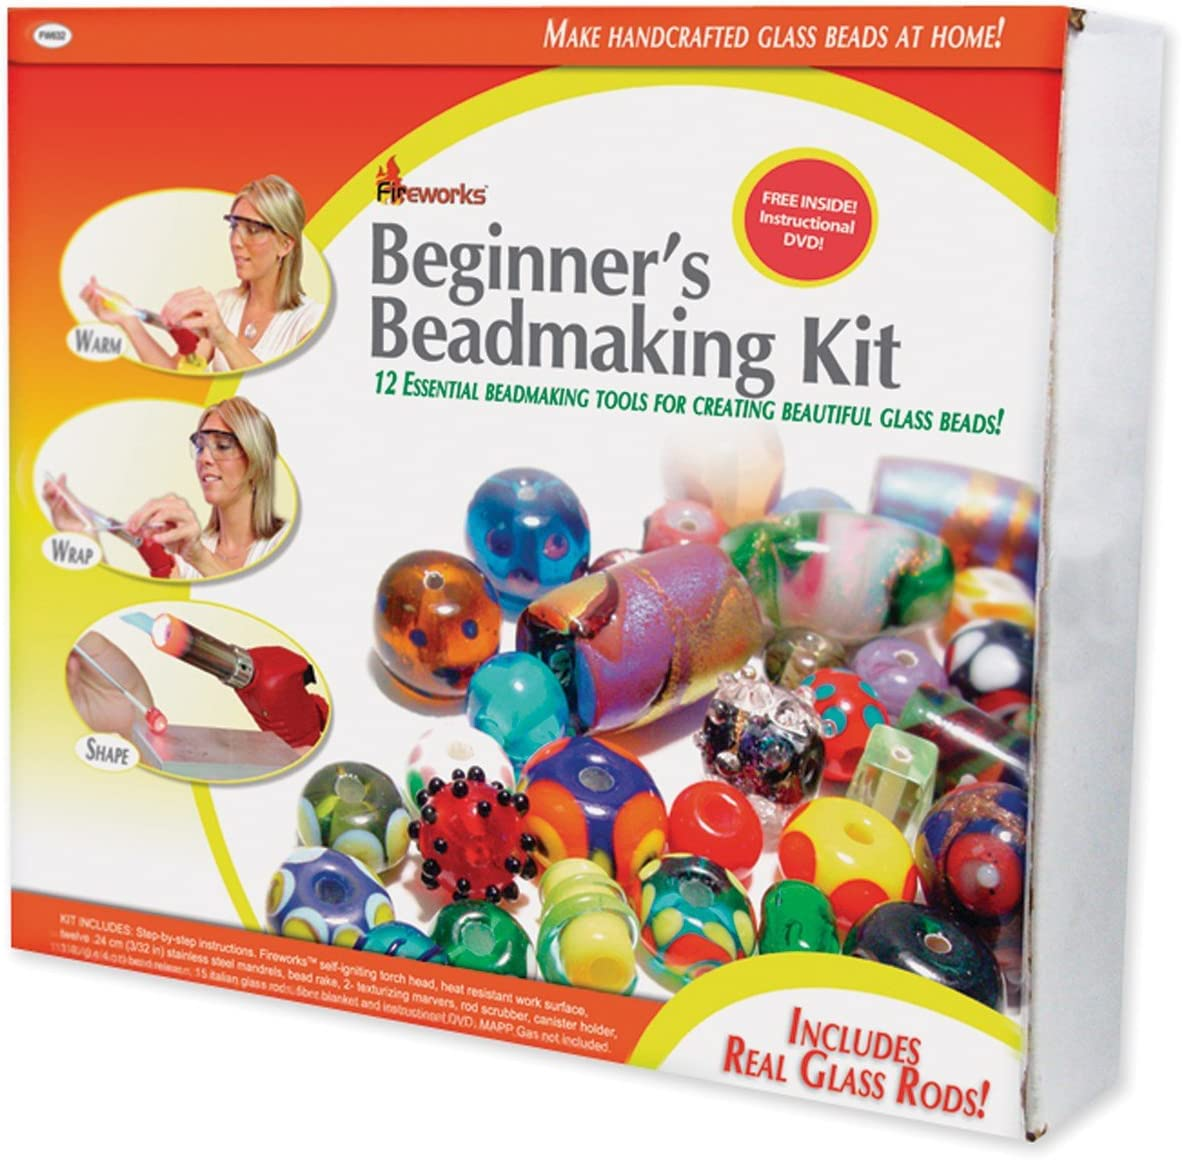 Fireworks Beginner's Bead Kit Includes Tools, Supplies, Glass Rods and Instructional DVD